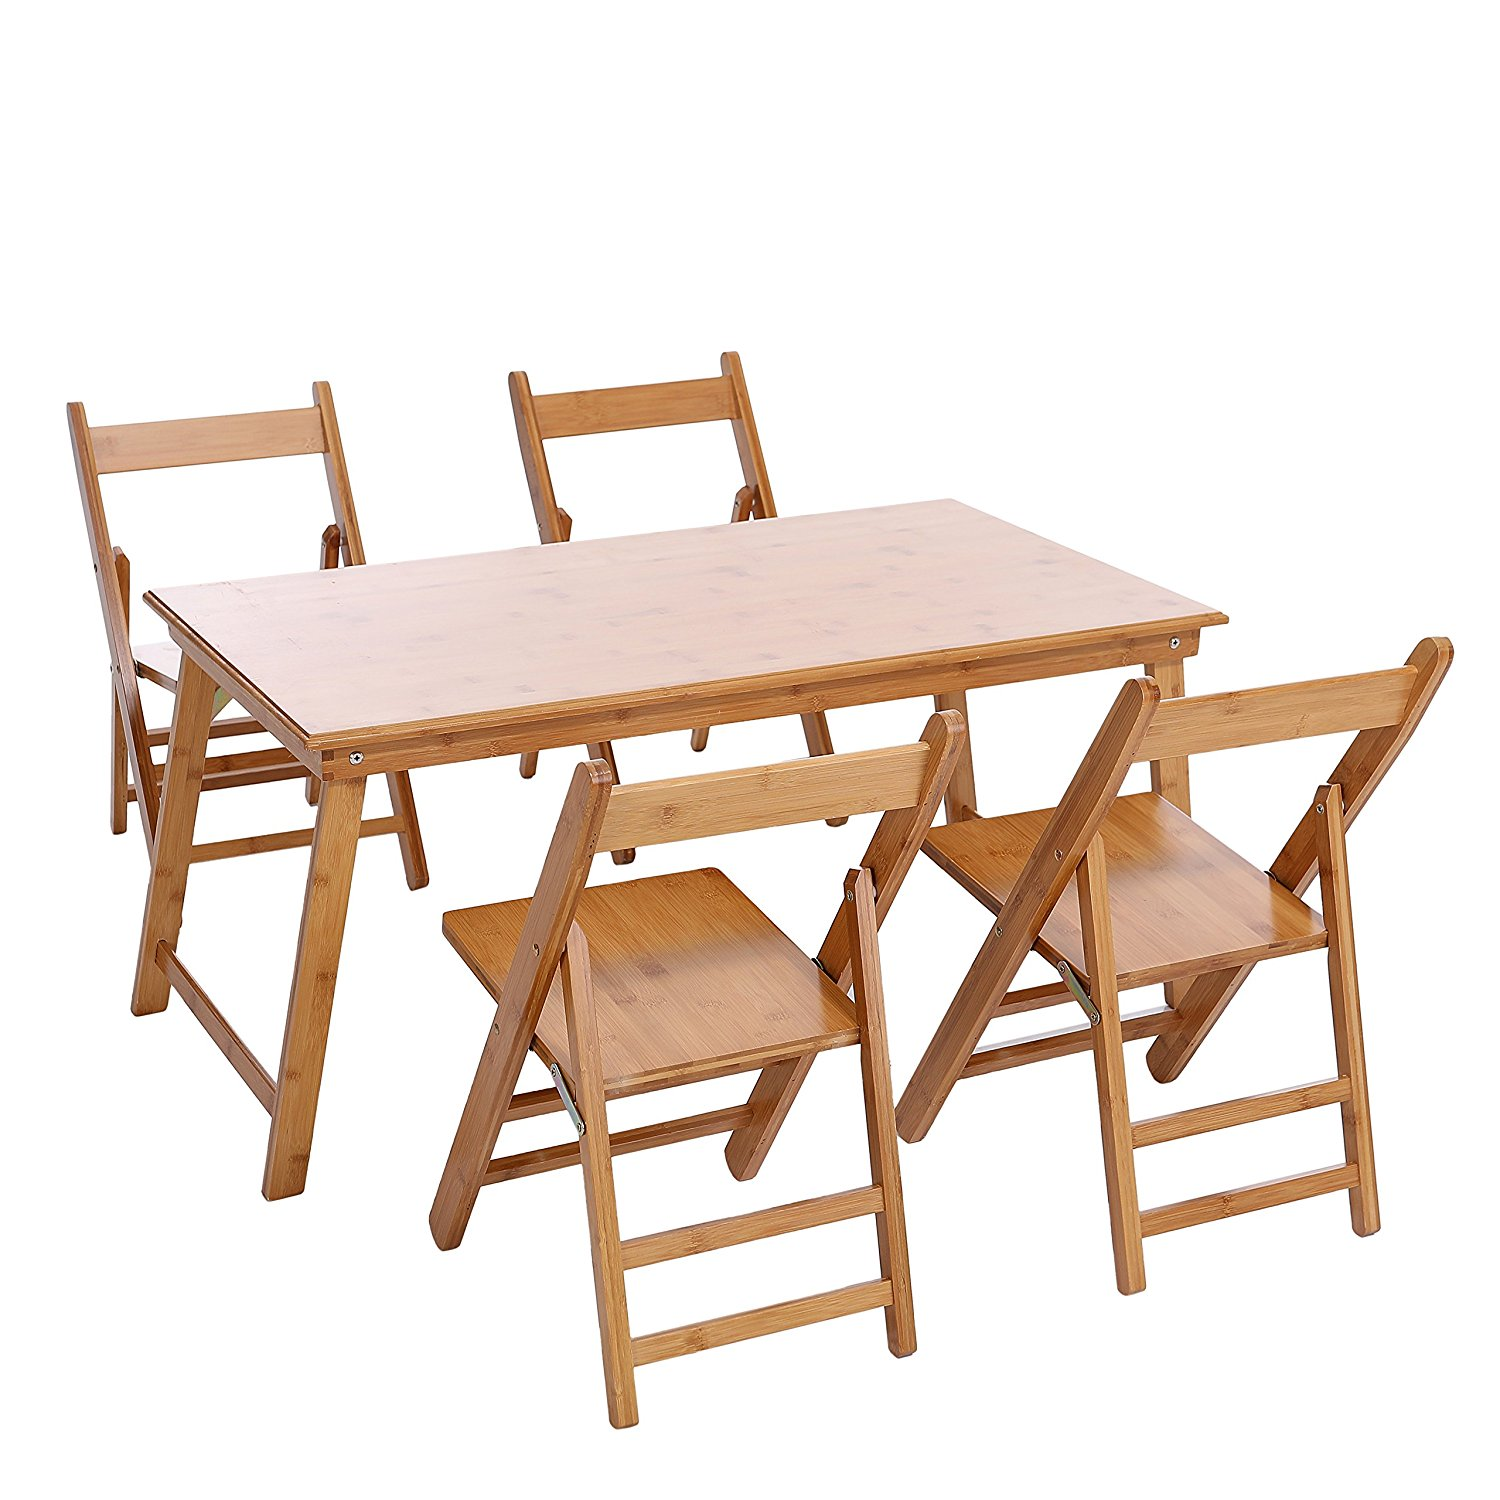 Children's Trestle Table Buy Unicoo Bamboo Rectangular Folding Table With 4 Folding Chairs